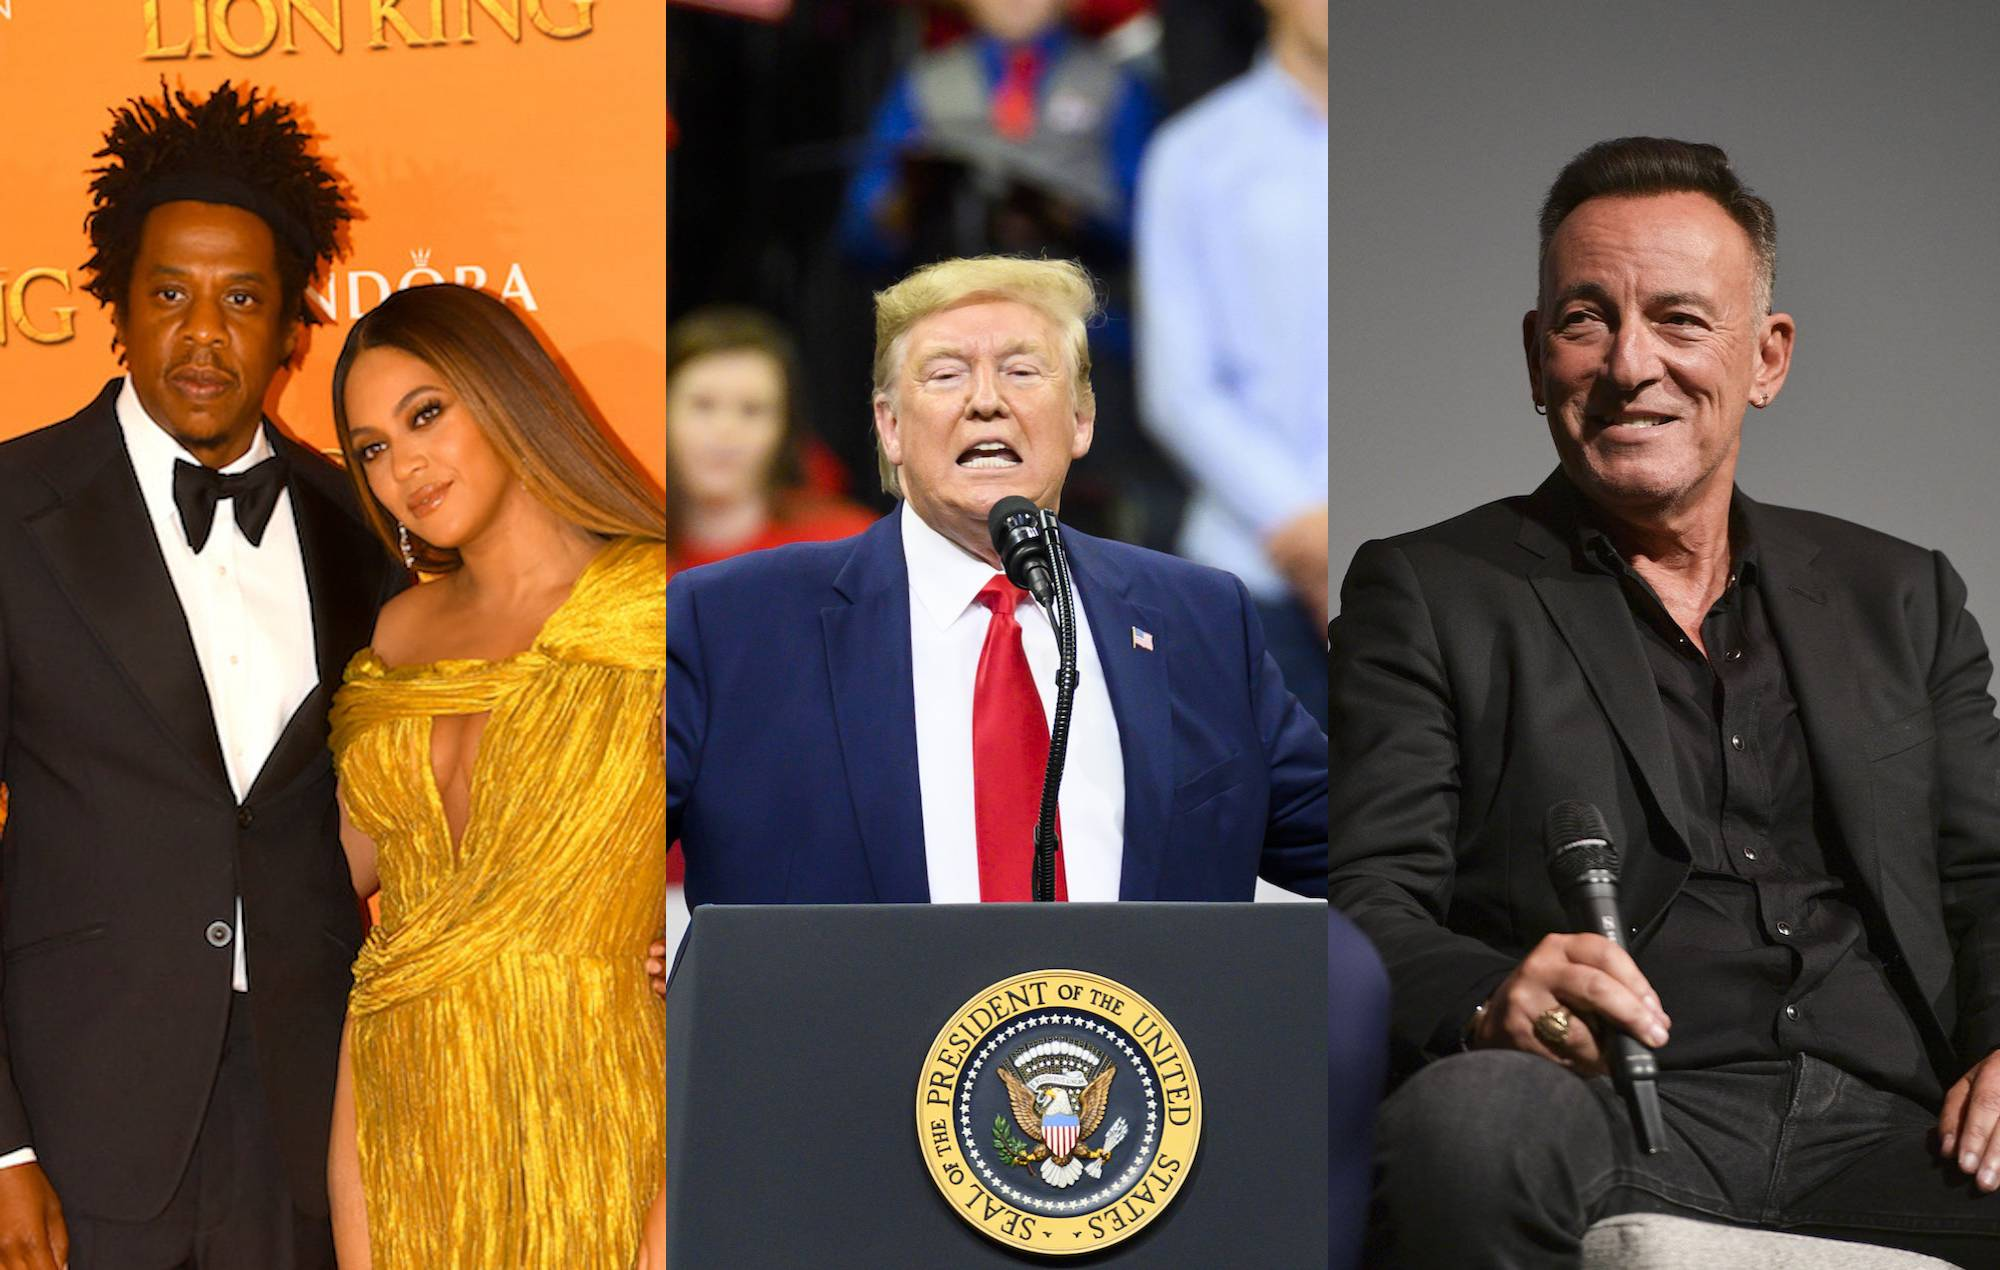 Donald Trump blasts Beyoncé, Jay-Z and Bruce Springsteen at Minneapolis rally